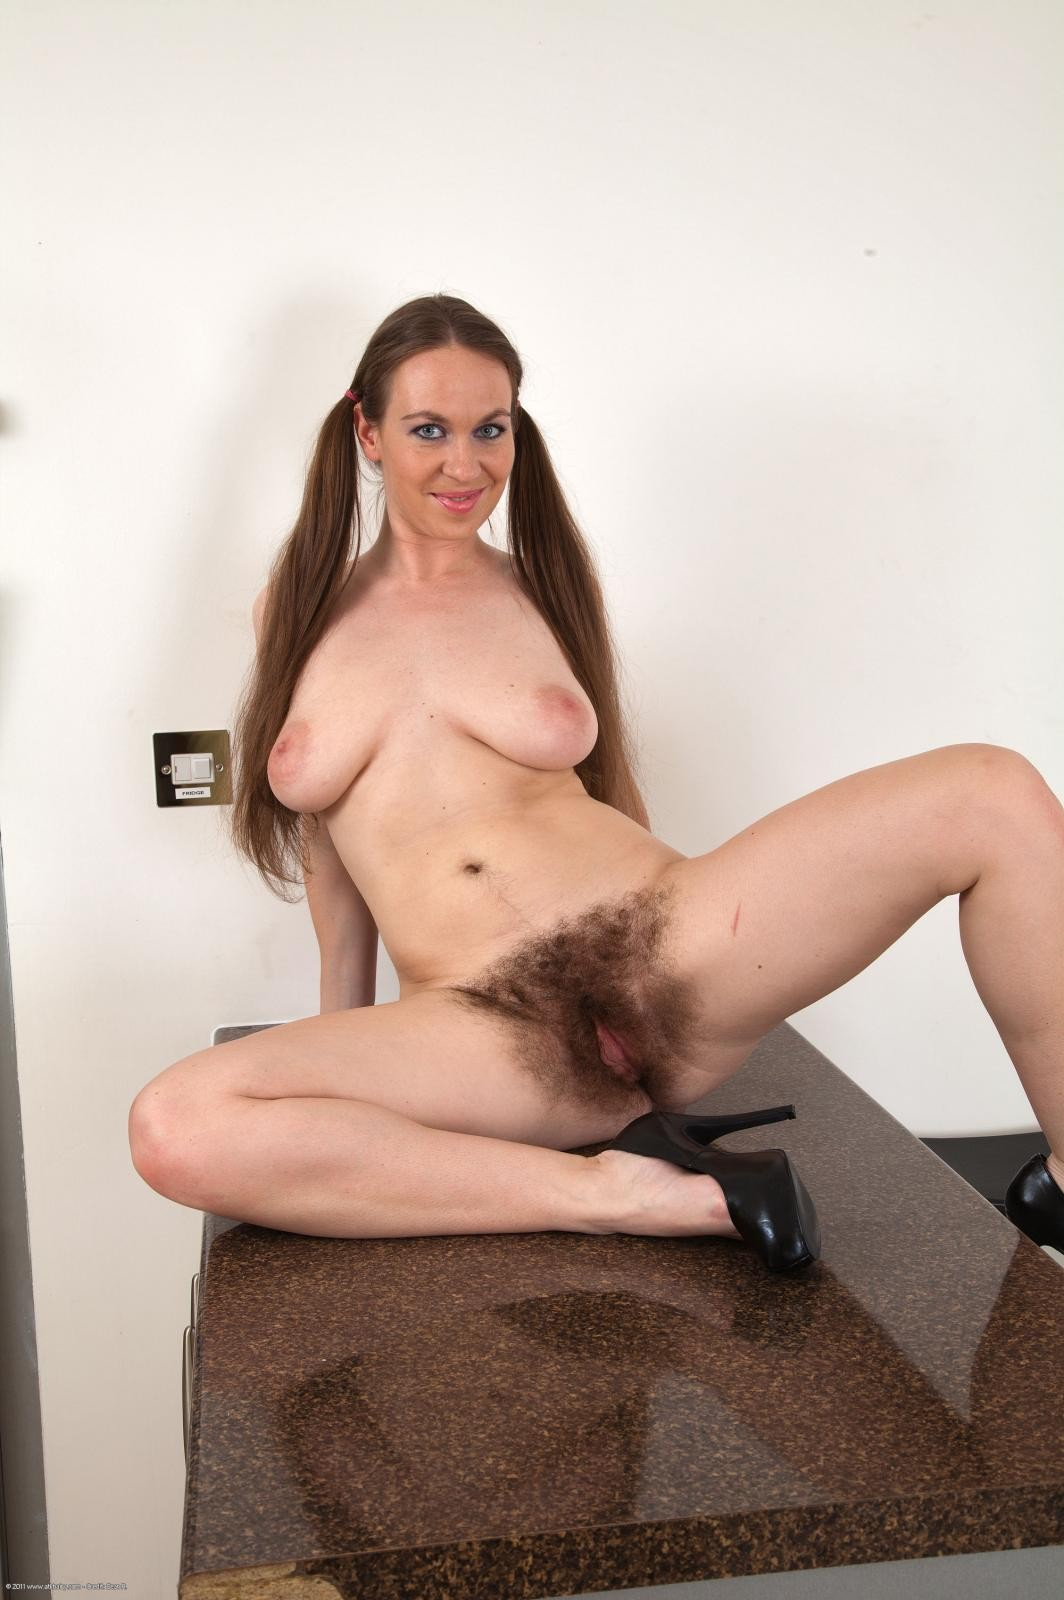 Hairy pussy porn movies